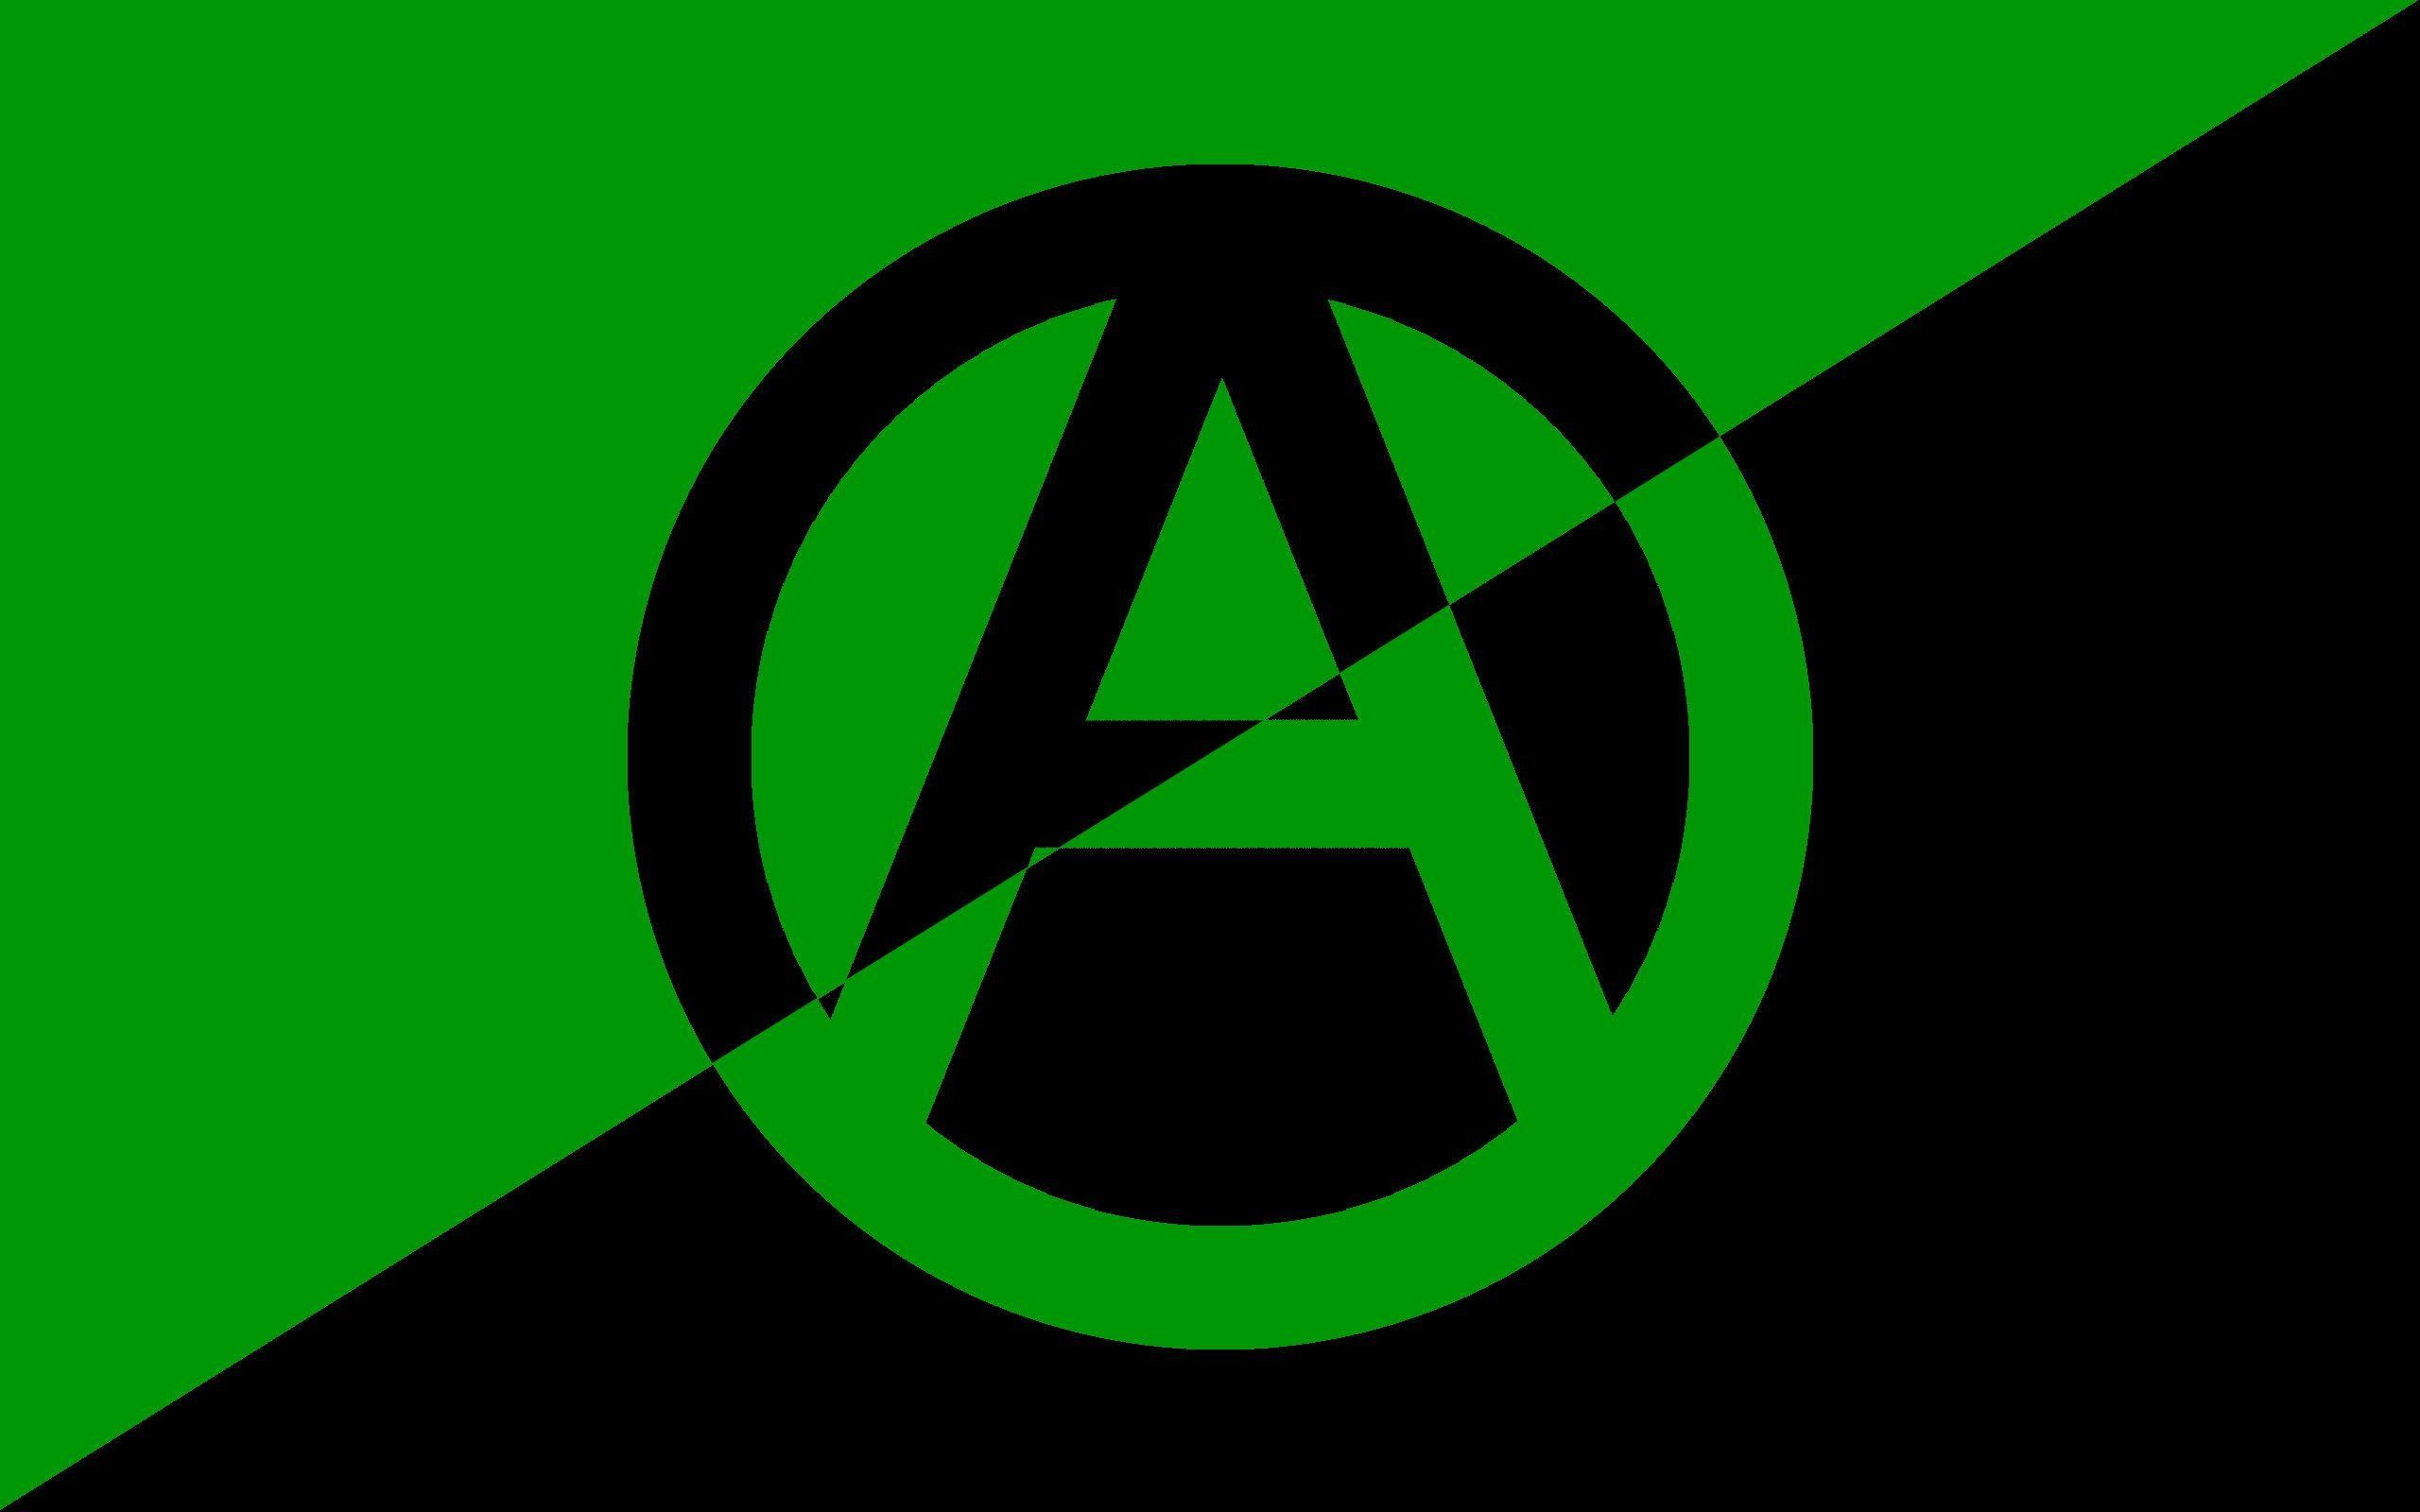 2560x1600 Green Anarchist Emblem by beebo004 on DeviantArt